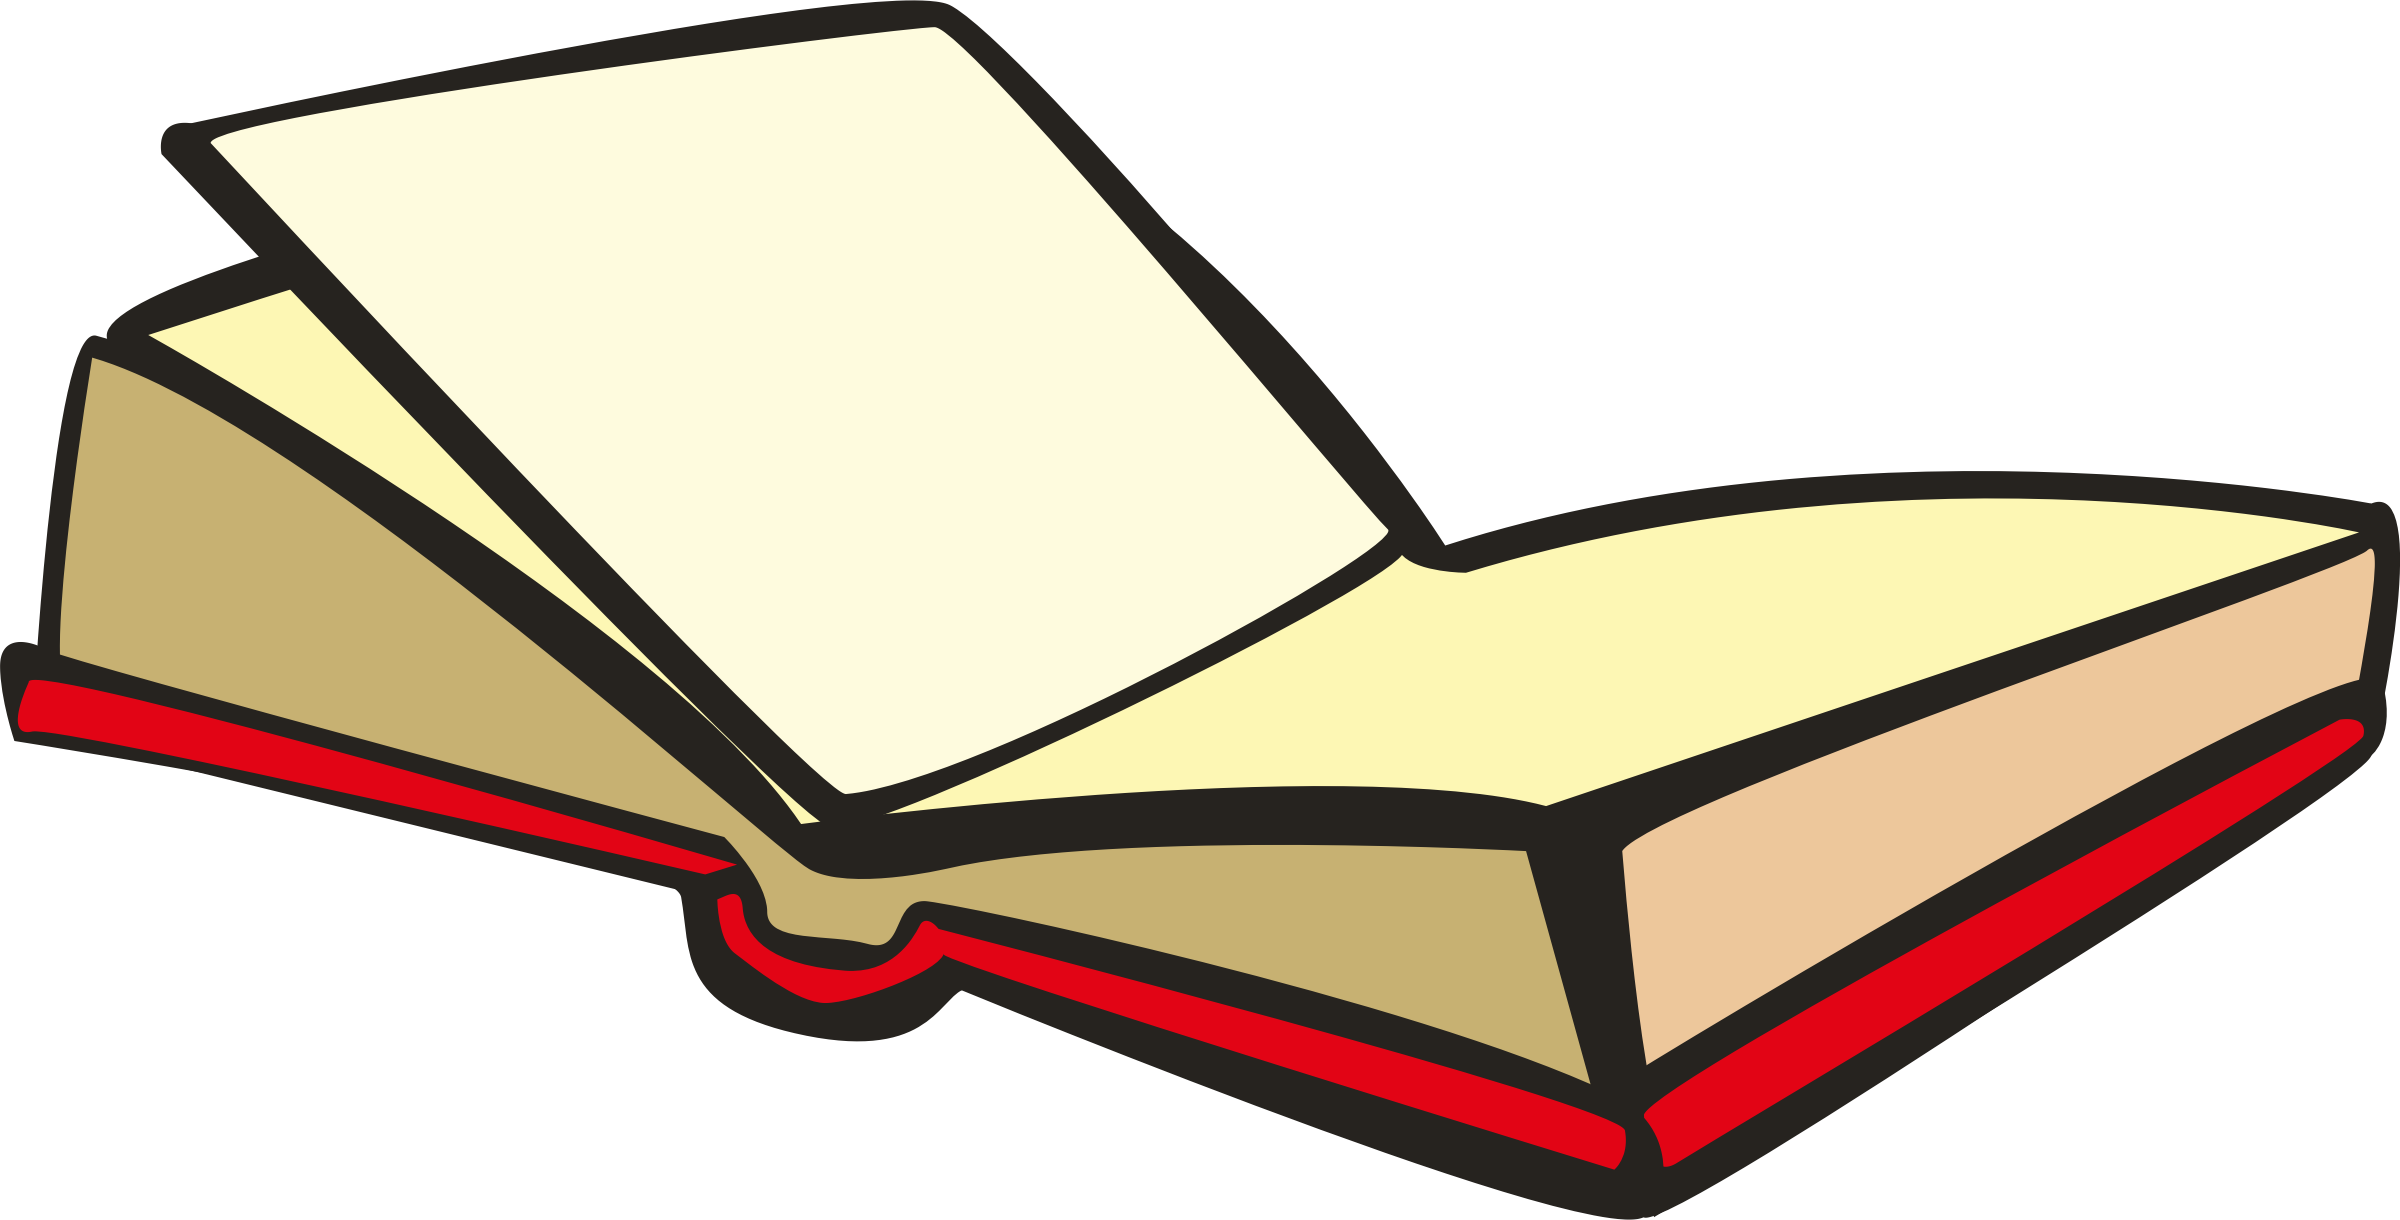 Clipart open book clip art library library Clipart - Open book clip art library library